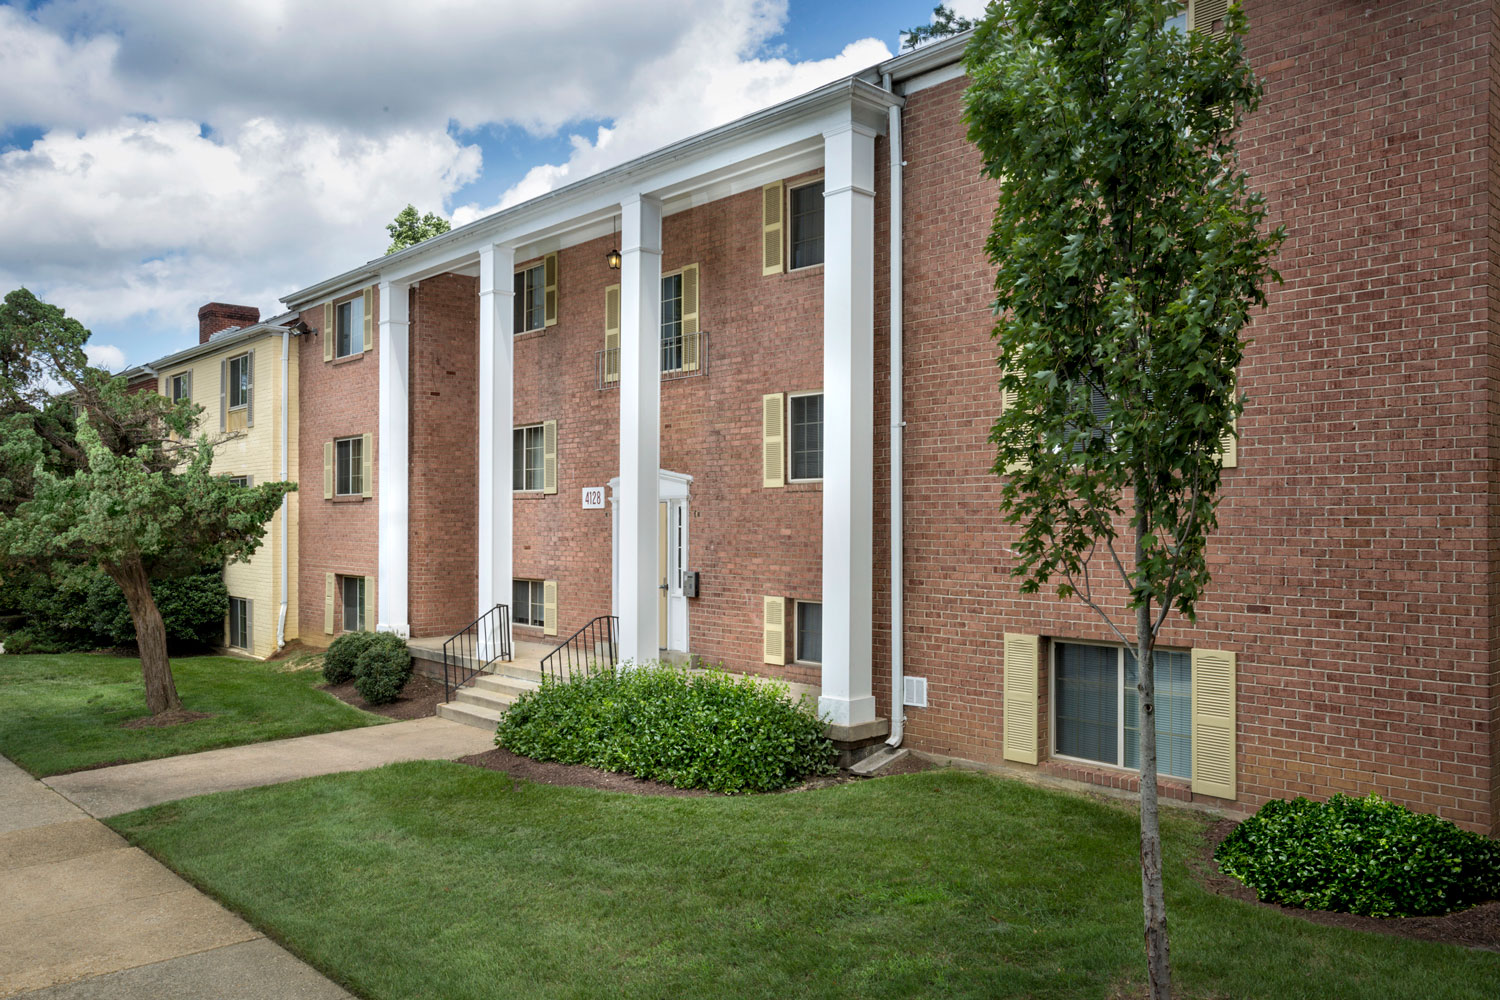 Beautiful architechture at Whitehall Square Apartments in Suitland, MD